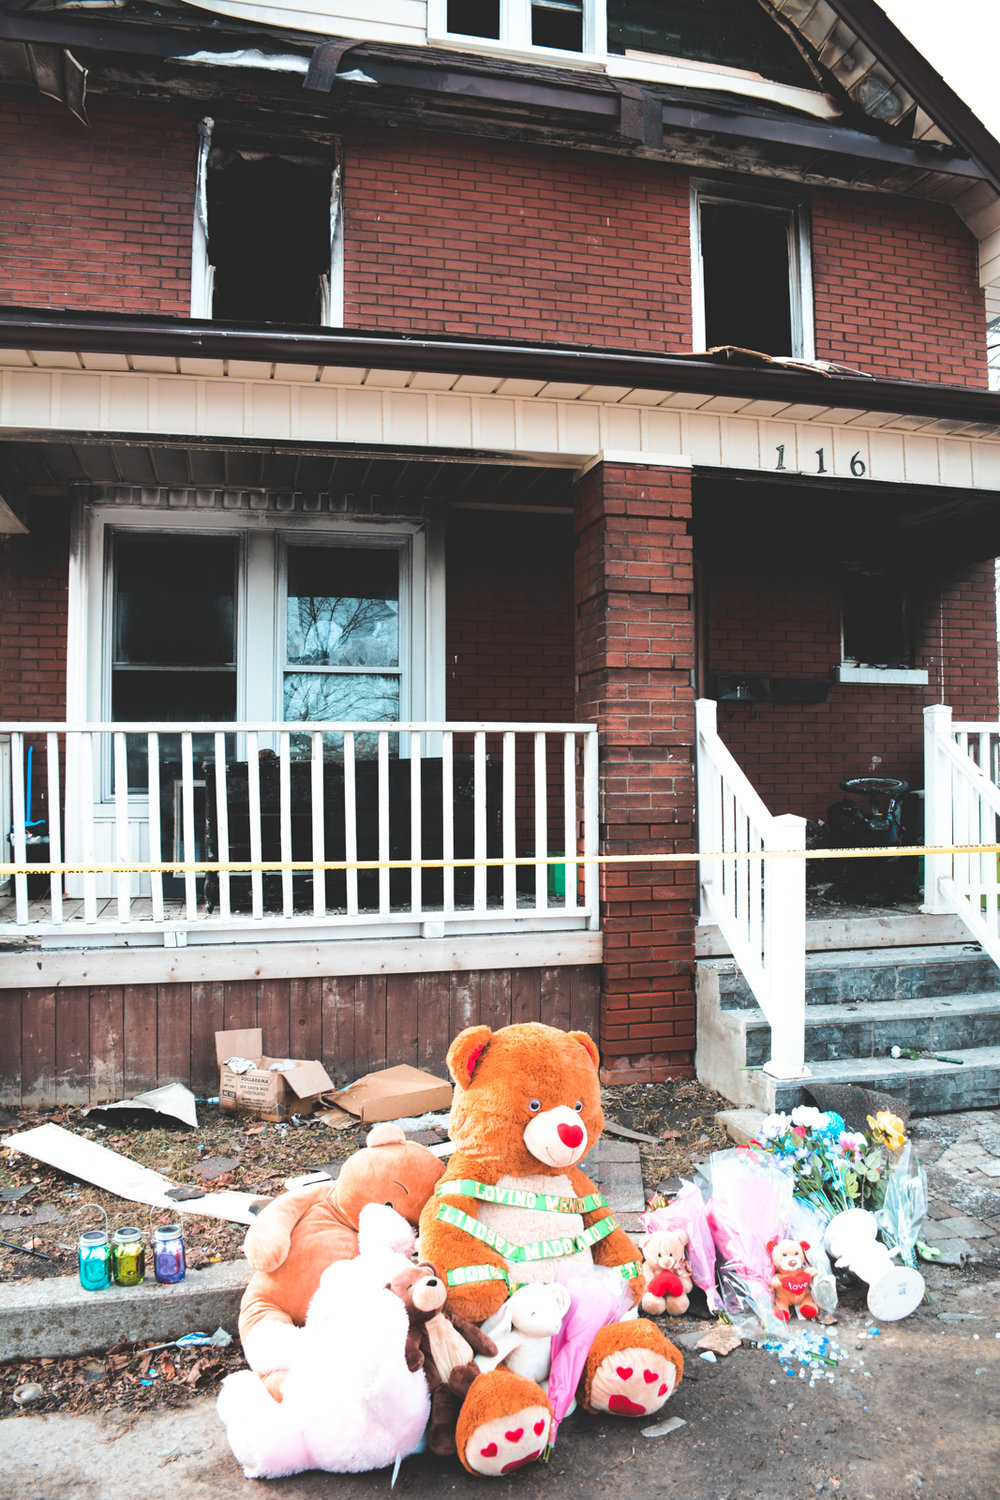 Outside the site of a house fire that left four people dead earlier this month in Oshawa.